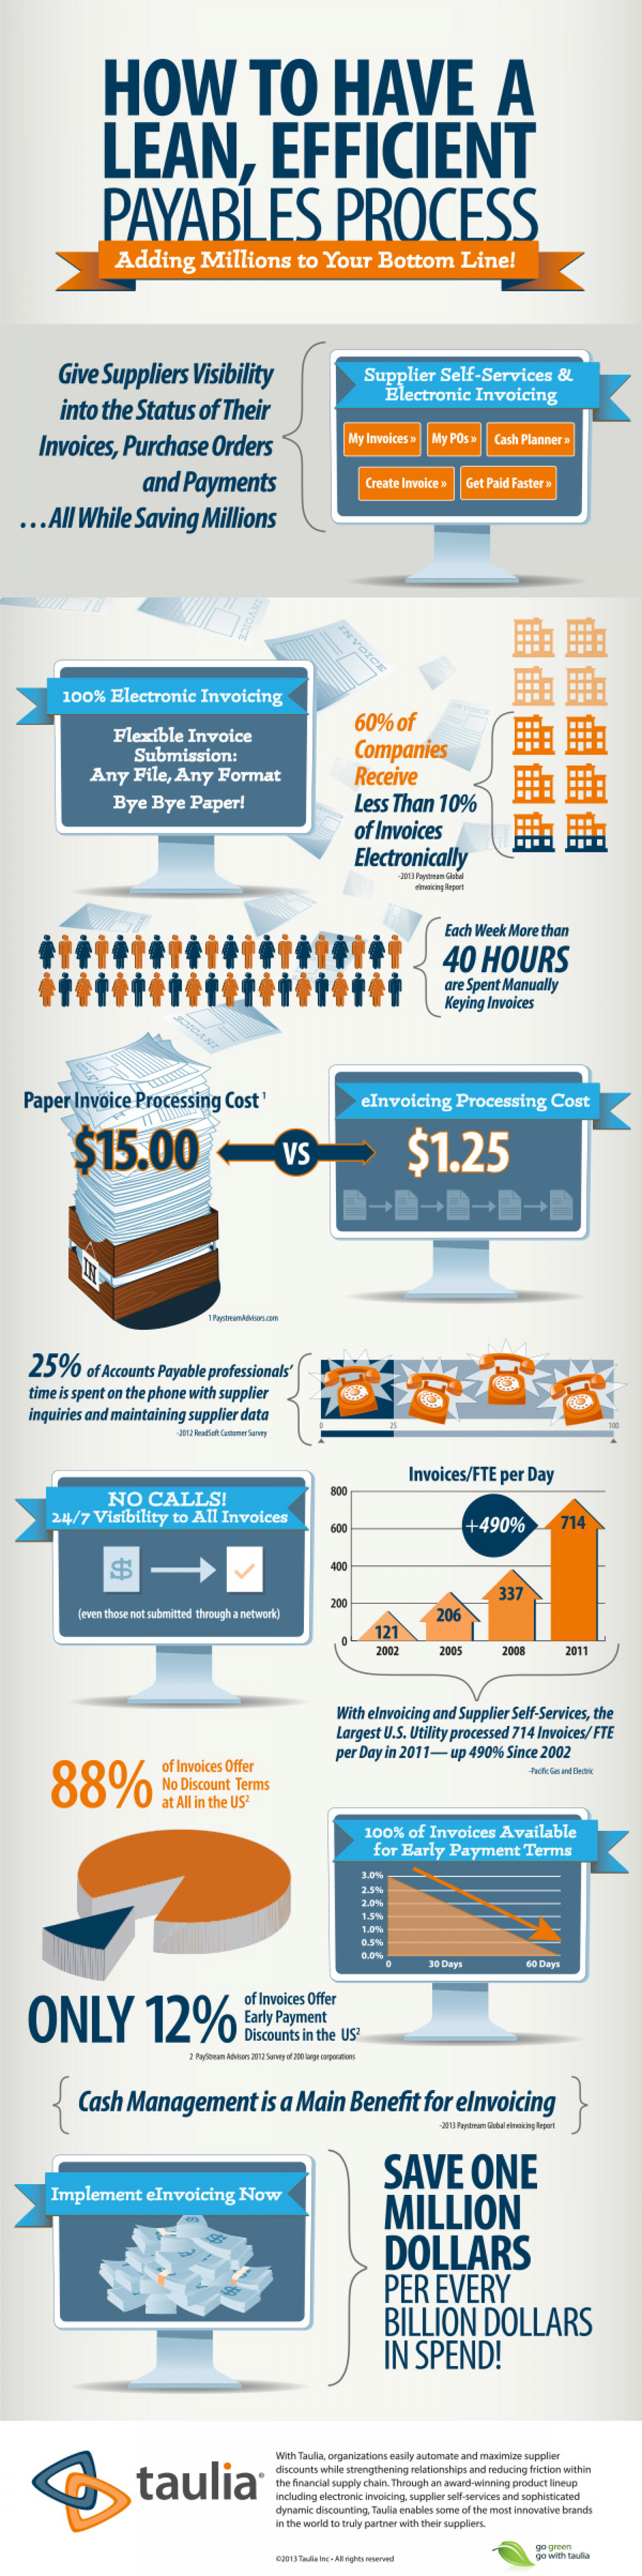 How to Have a Lean, Effecient Payables Process Infographic